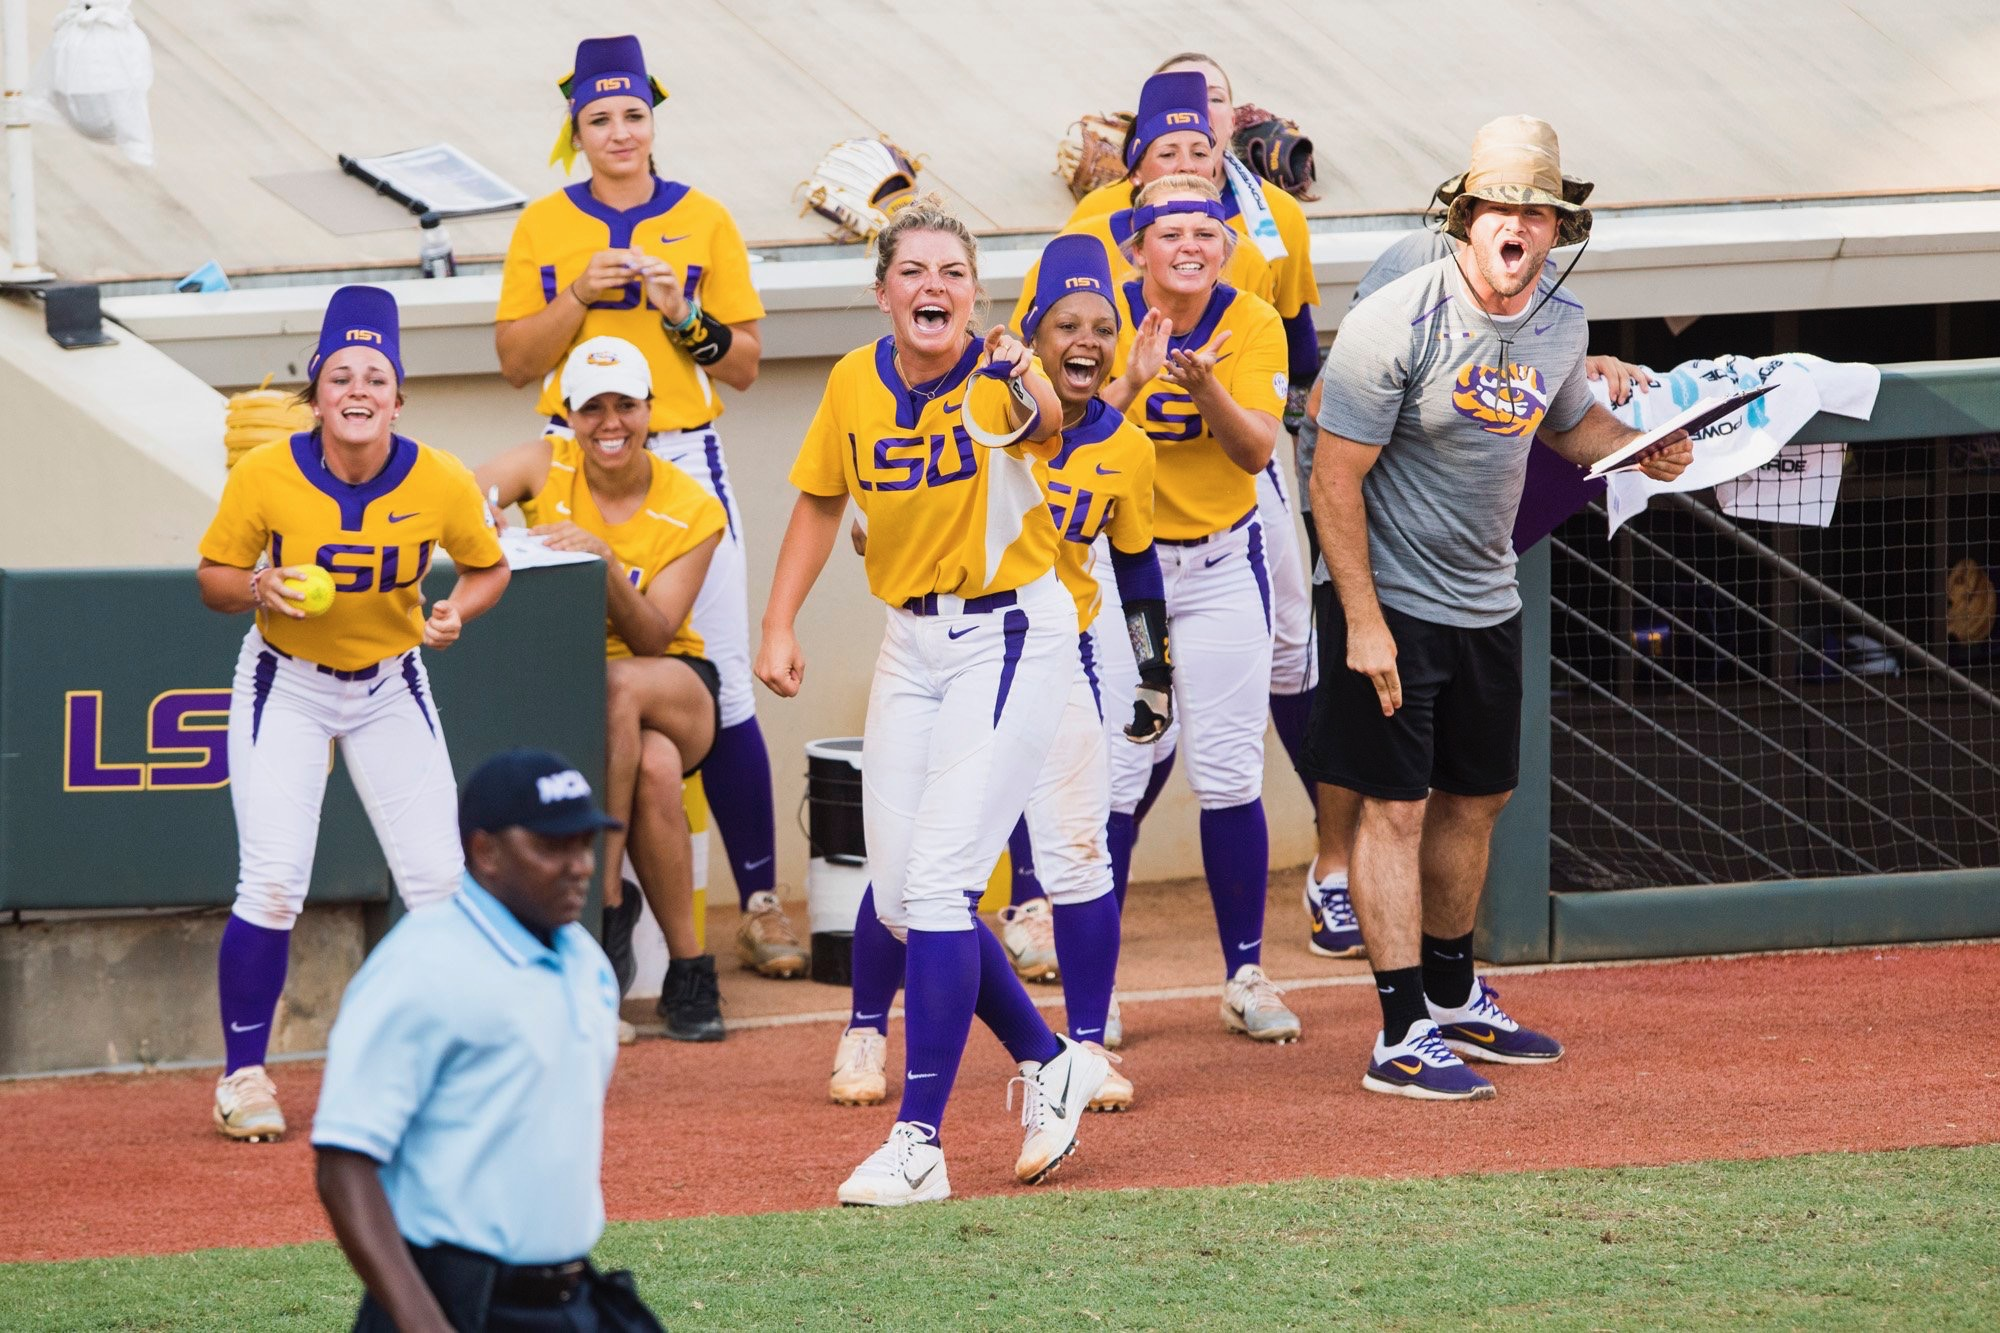 Softball defeats ULL to advance to Super Regionals